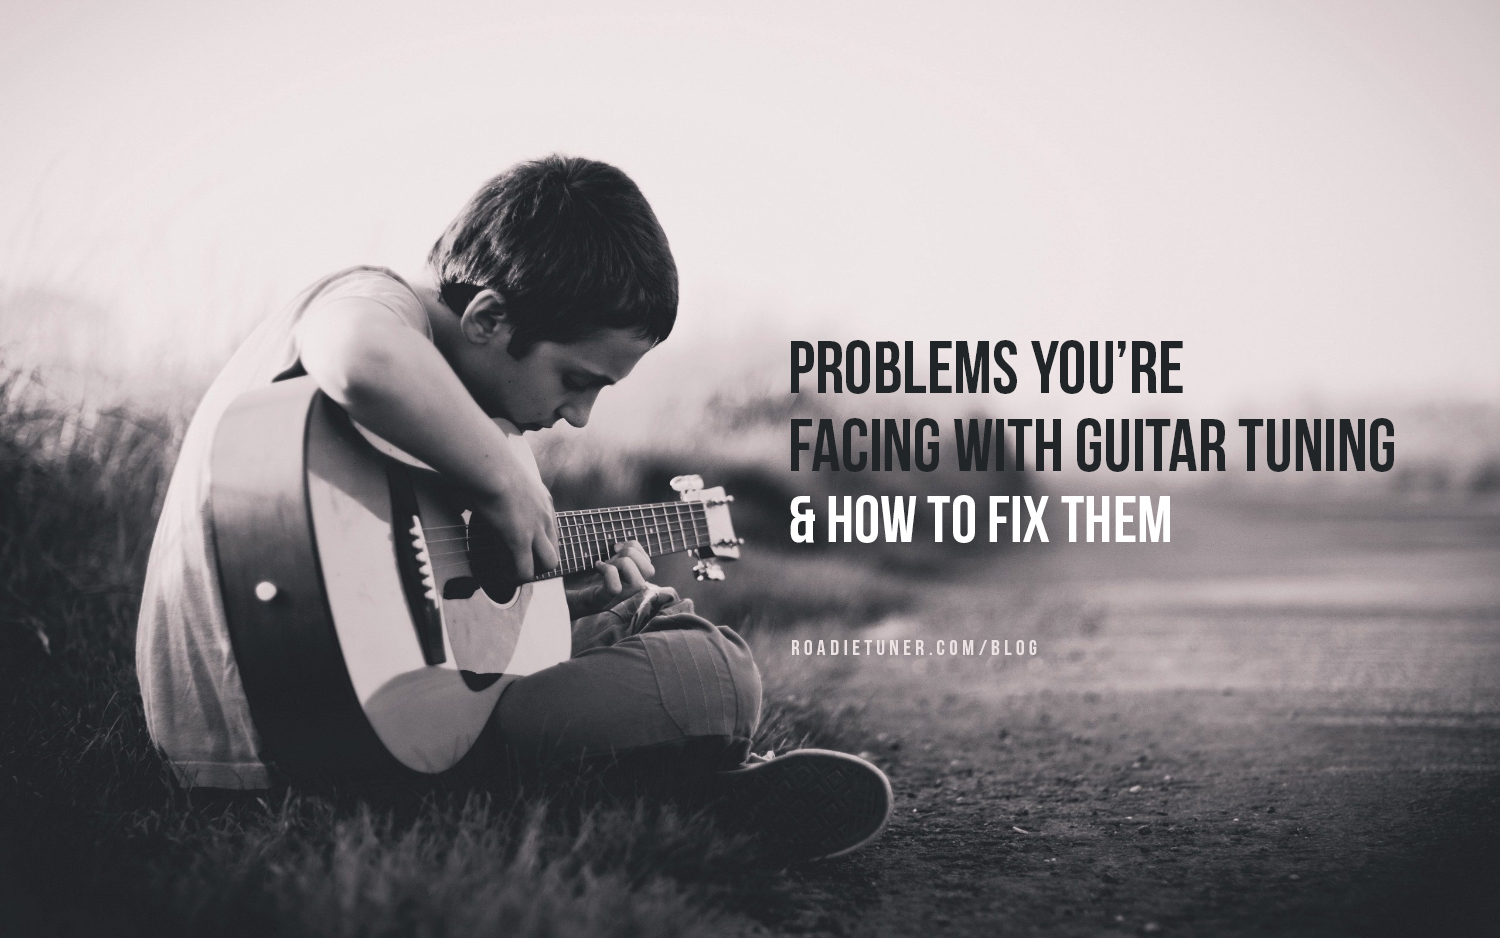 Guitar Tuning Problems and How to Fix Them